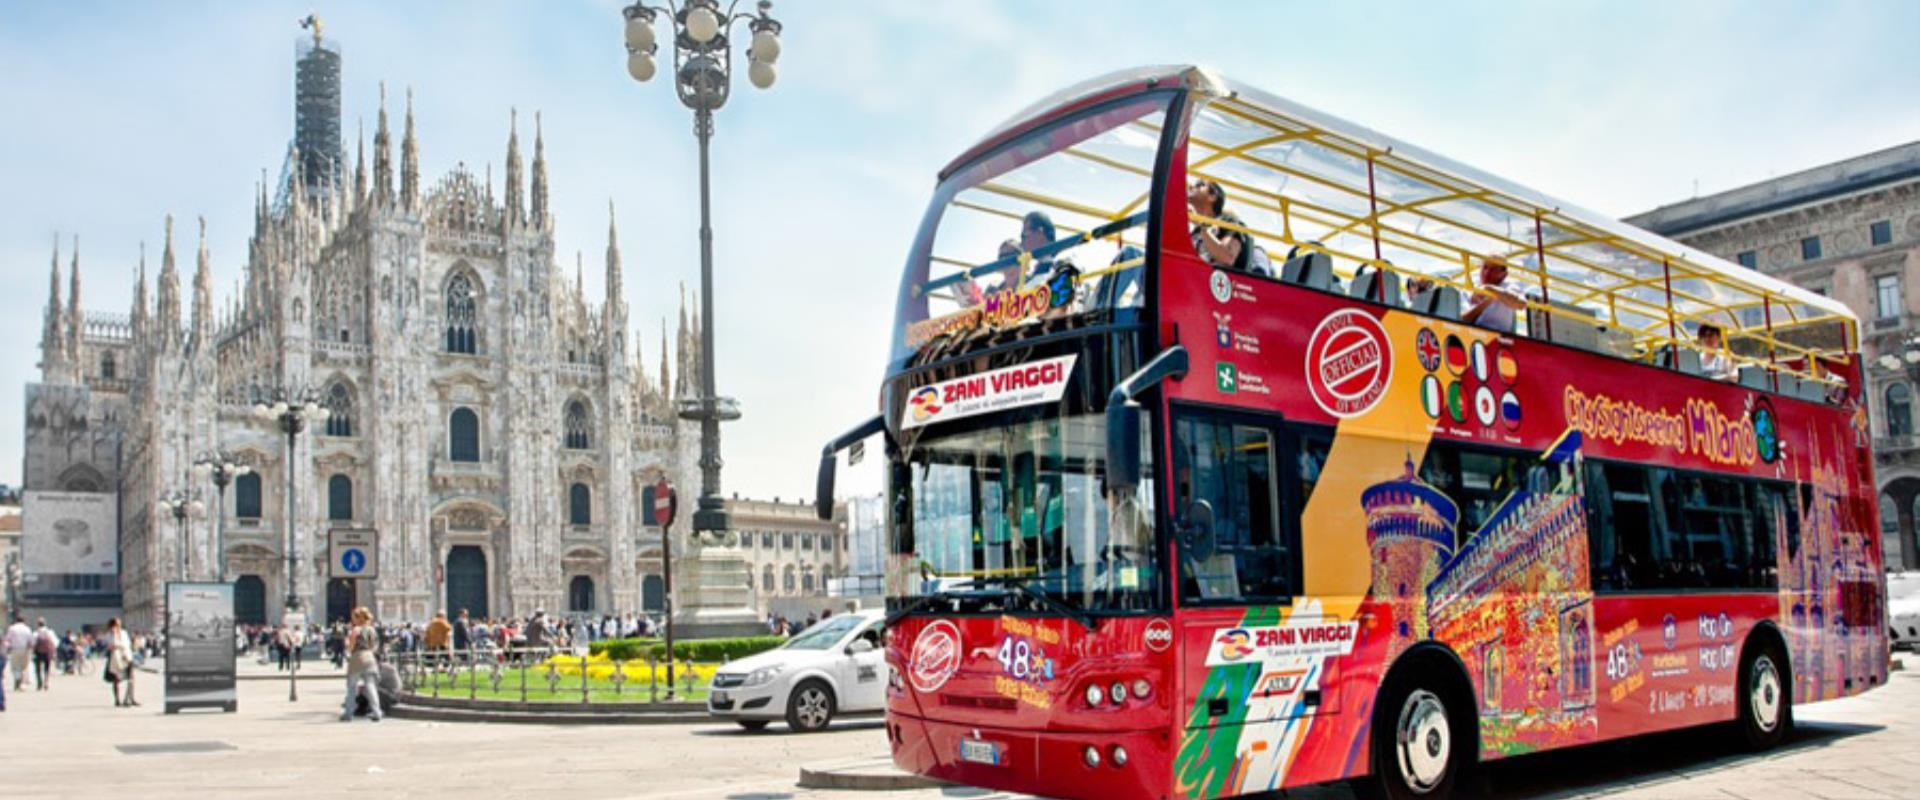 CITYSIGHTSEEING